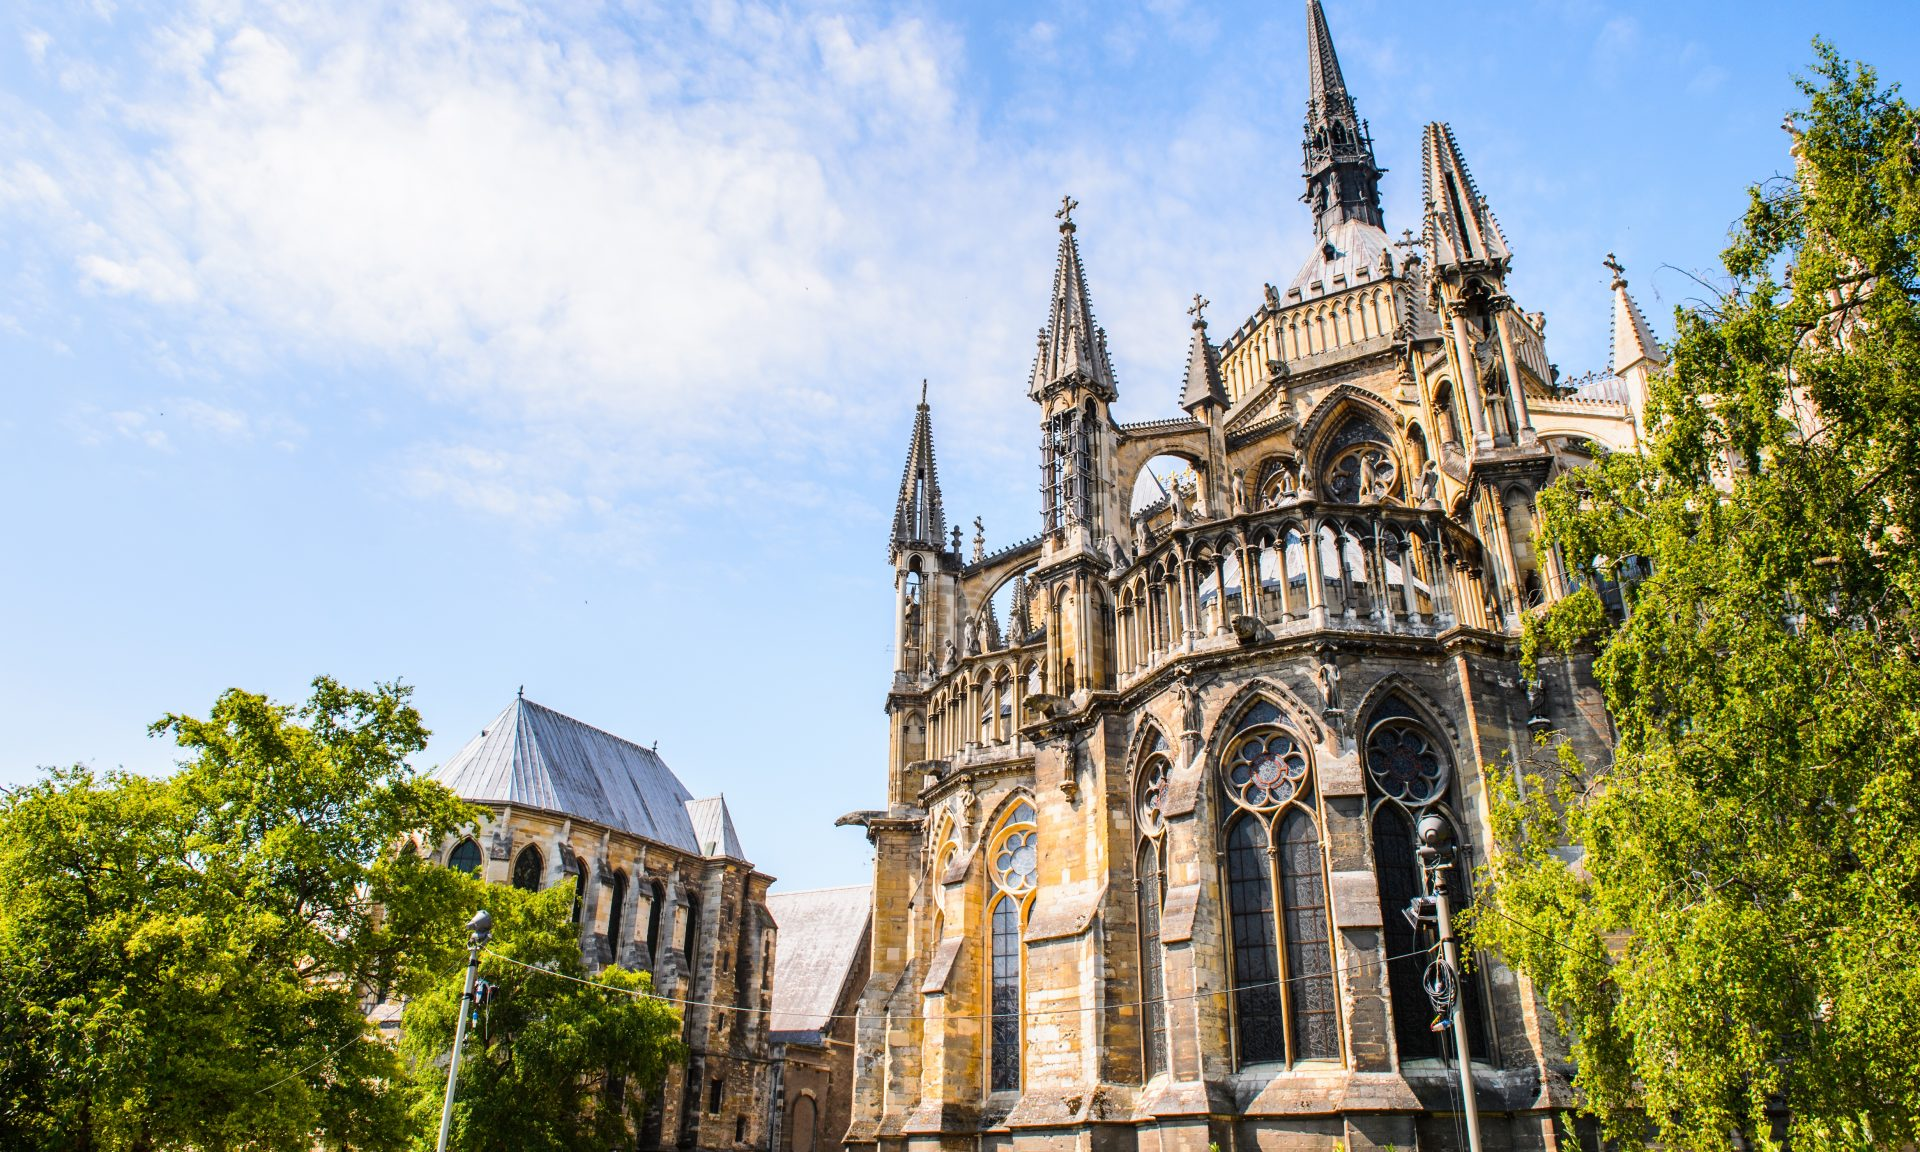 16 of France's kings were crowned in the Gothic Cathedral in Reims.